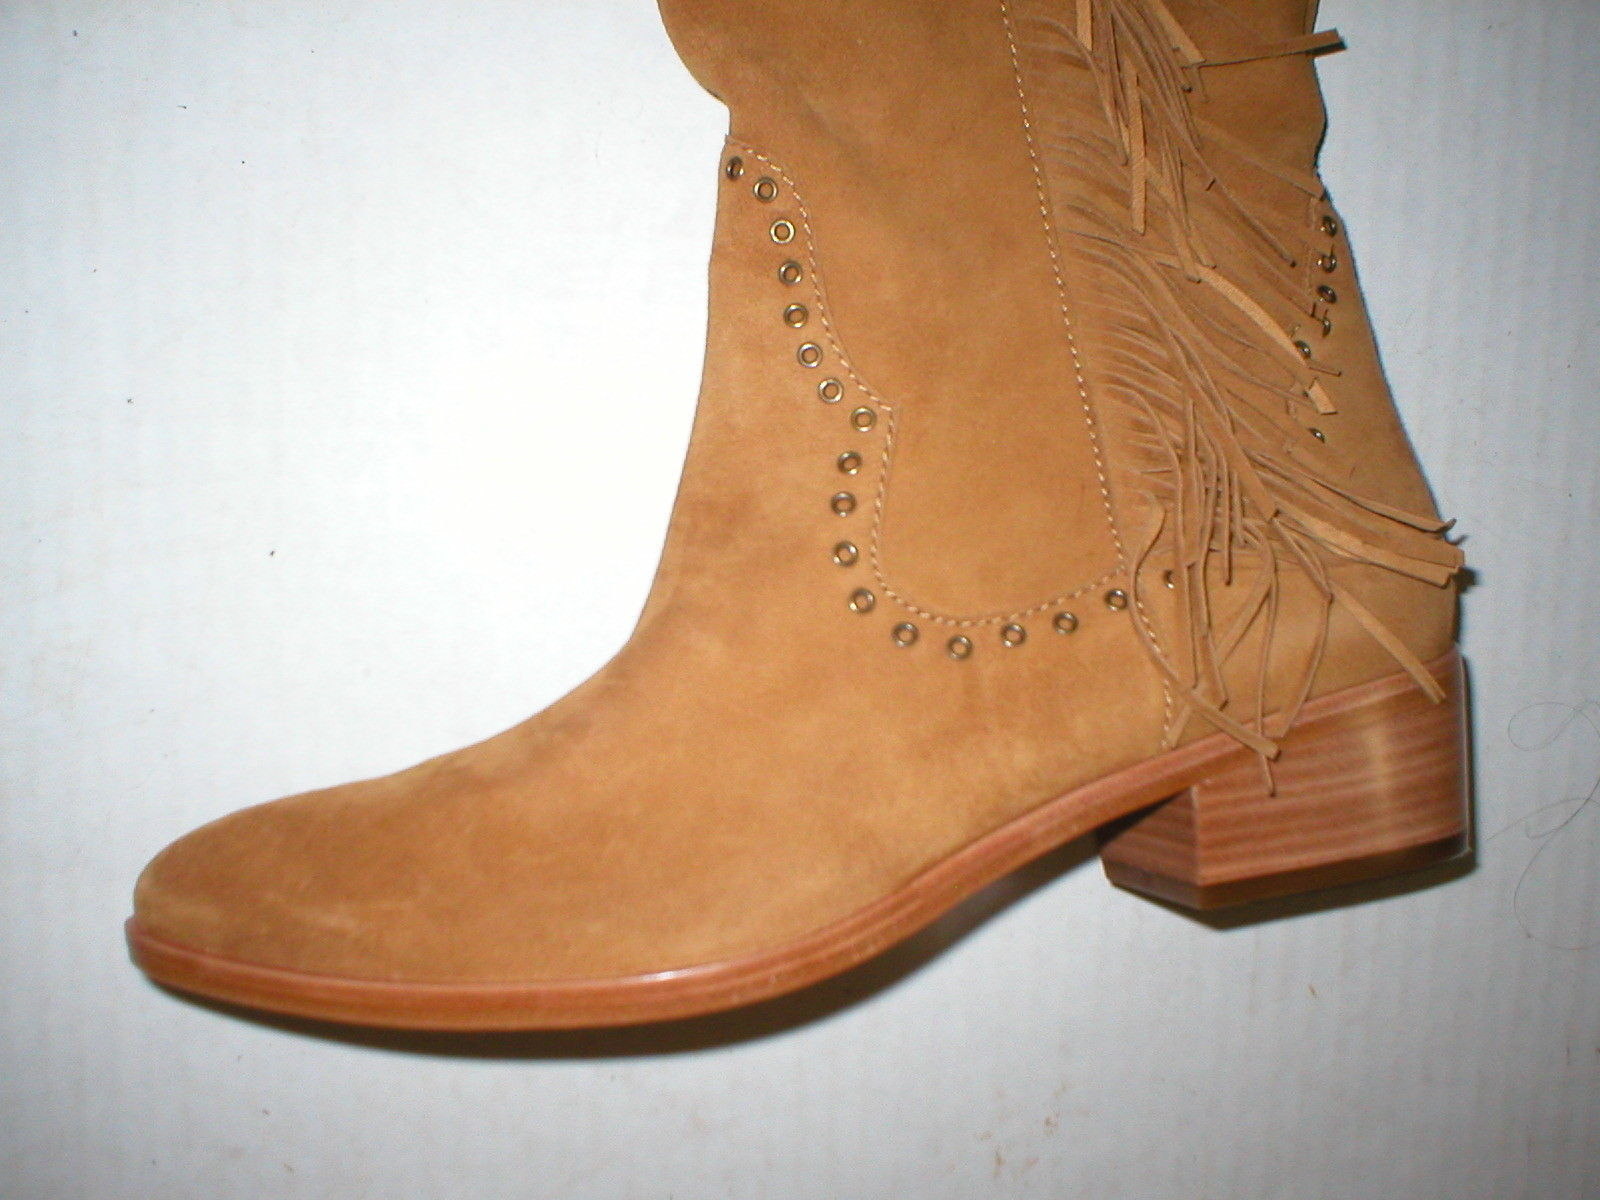 New $578 Womens 9.5 Frye Suede Leather Boots OTK Tall Knee Fringe Ray Camel Tan image 5